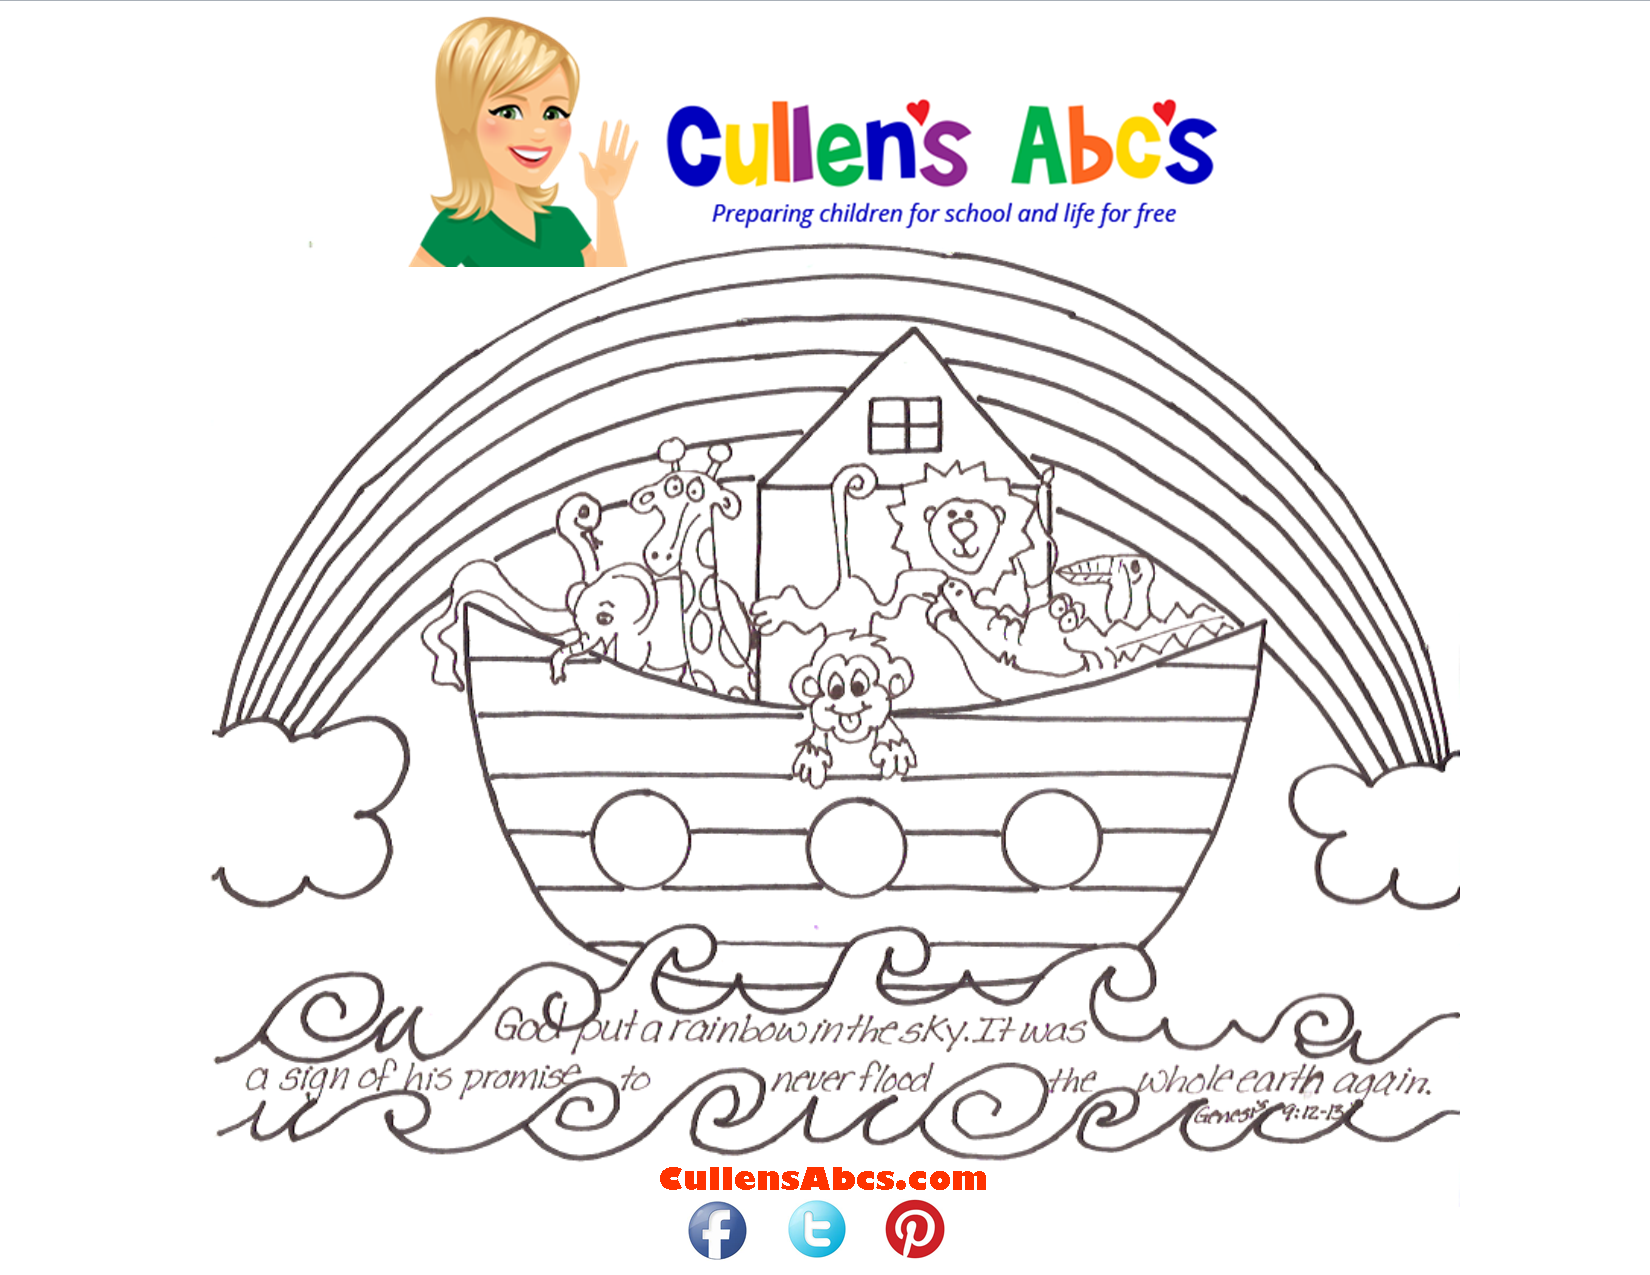 noahs ark coloring pages story - photo#17